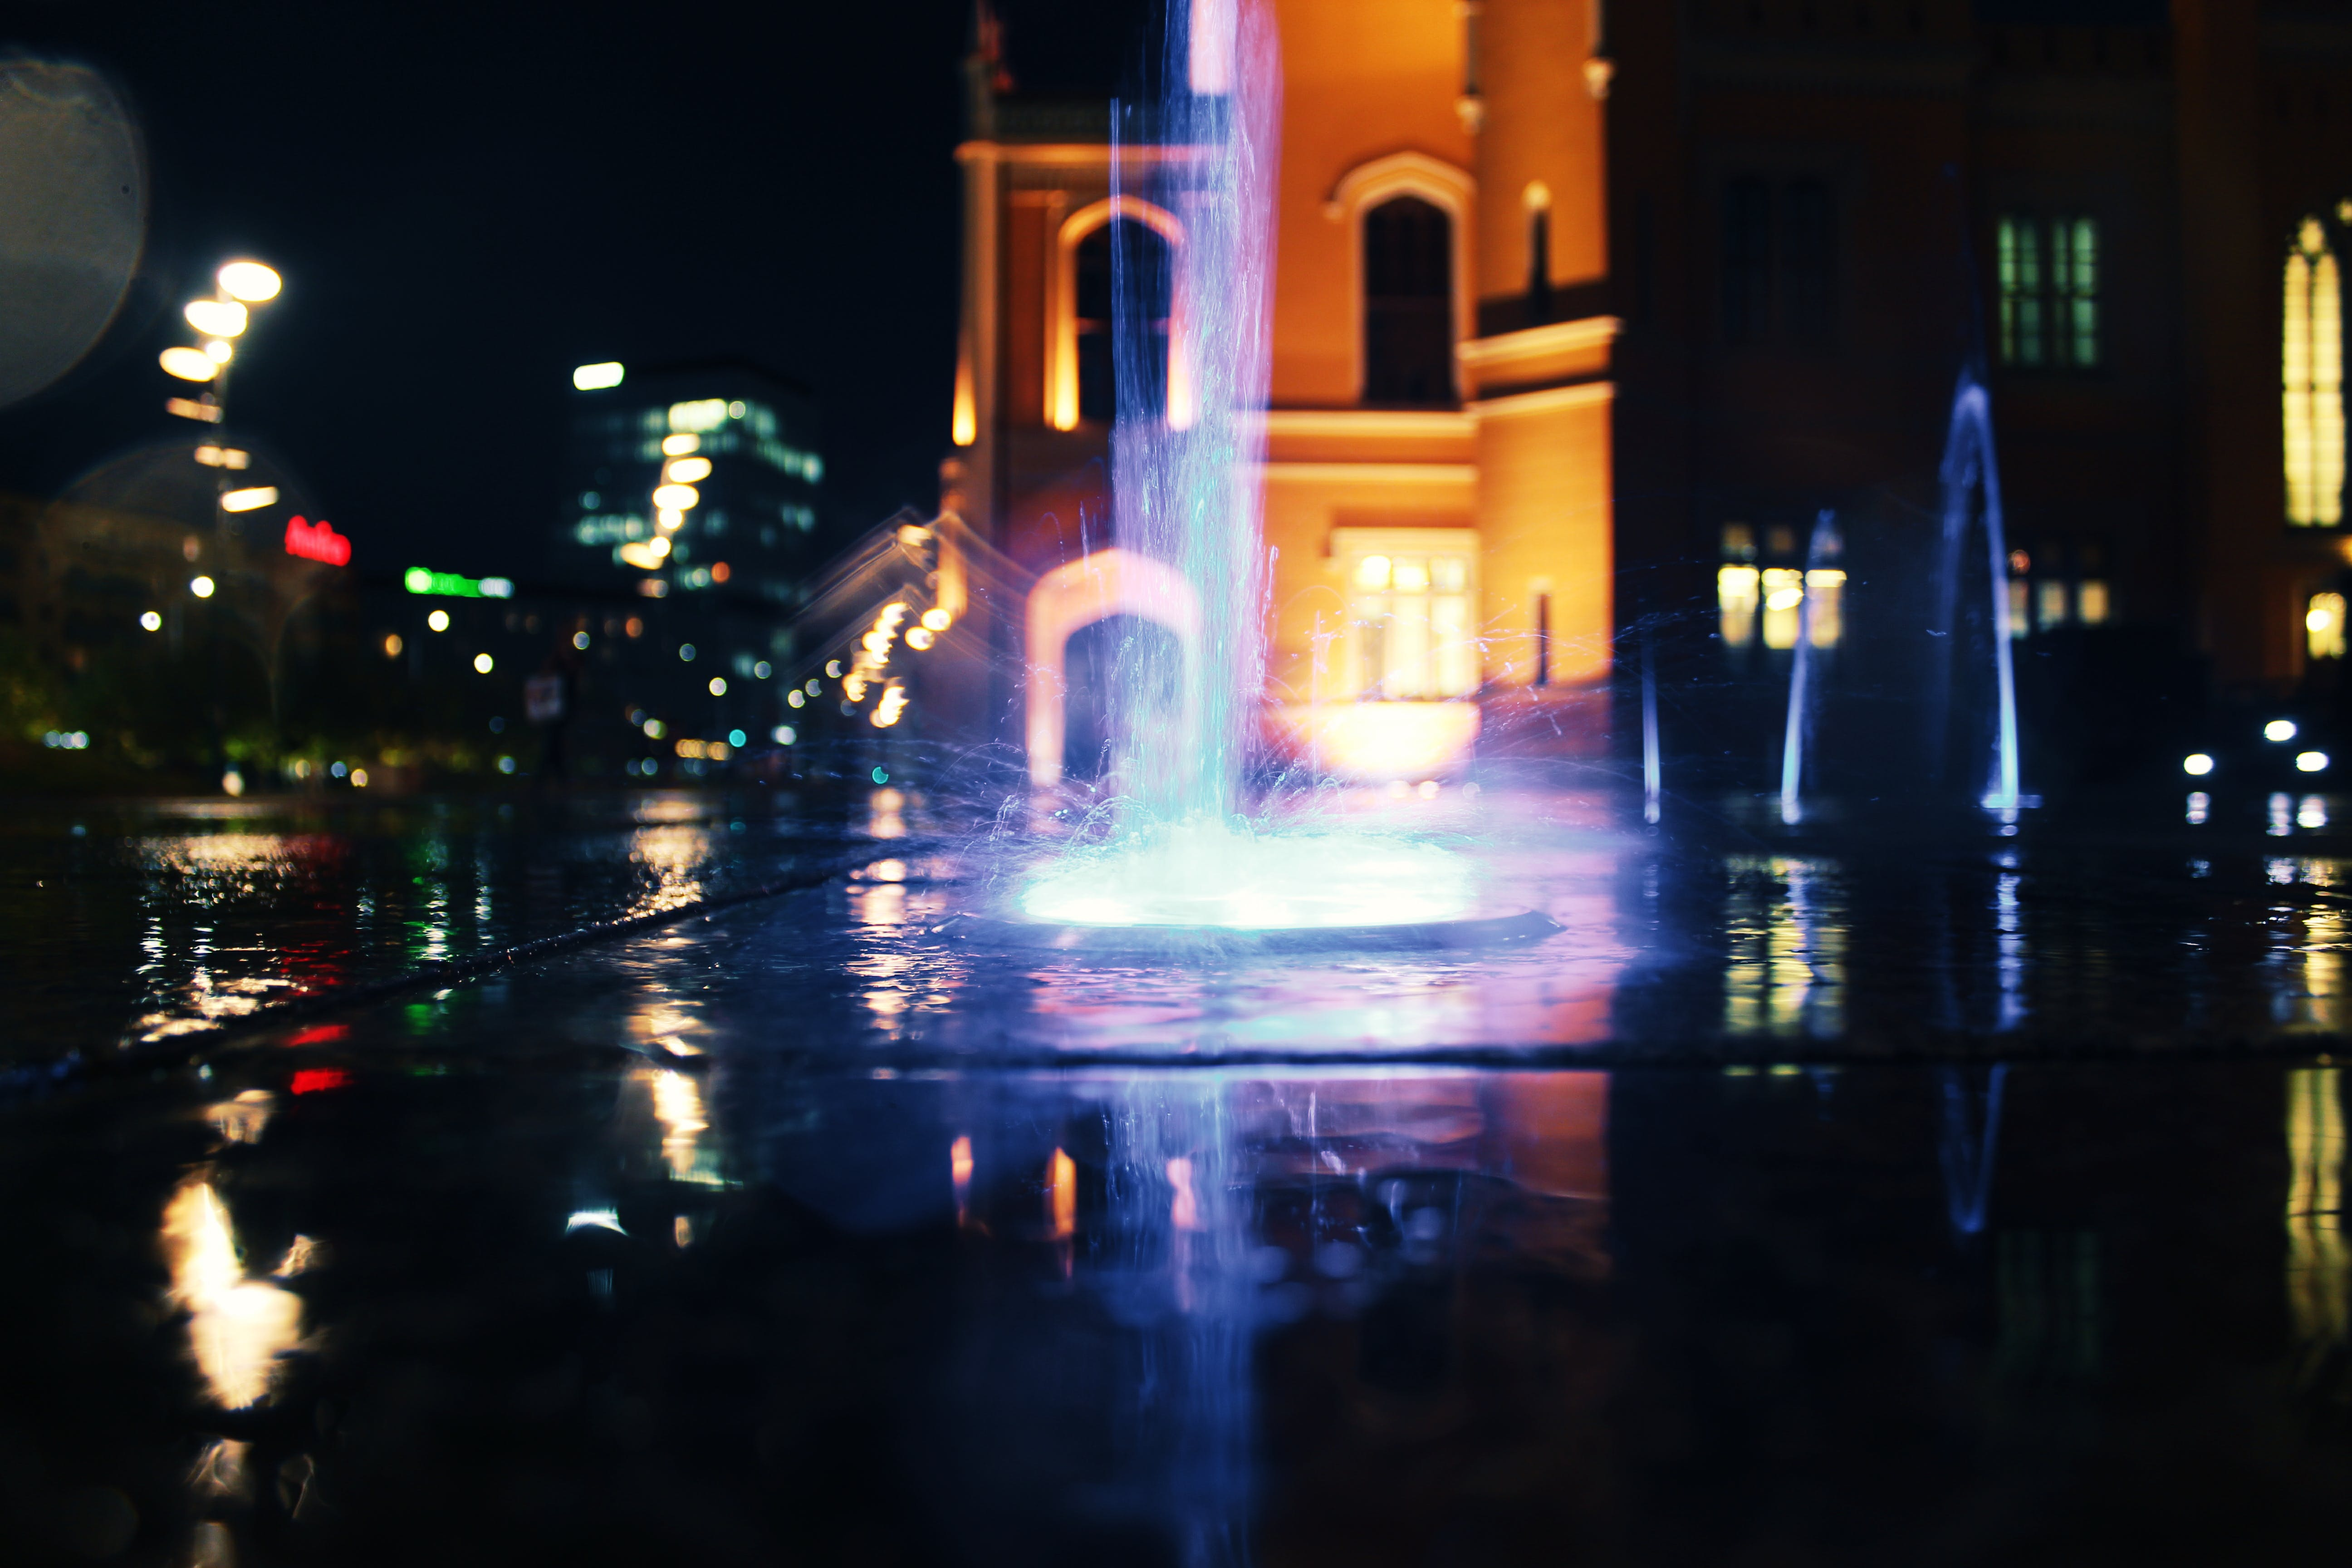 Lighted Water Fountain at Night